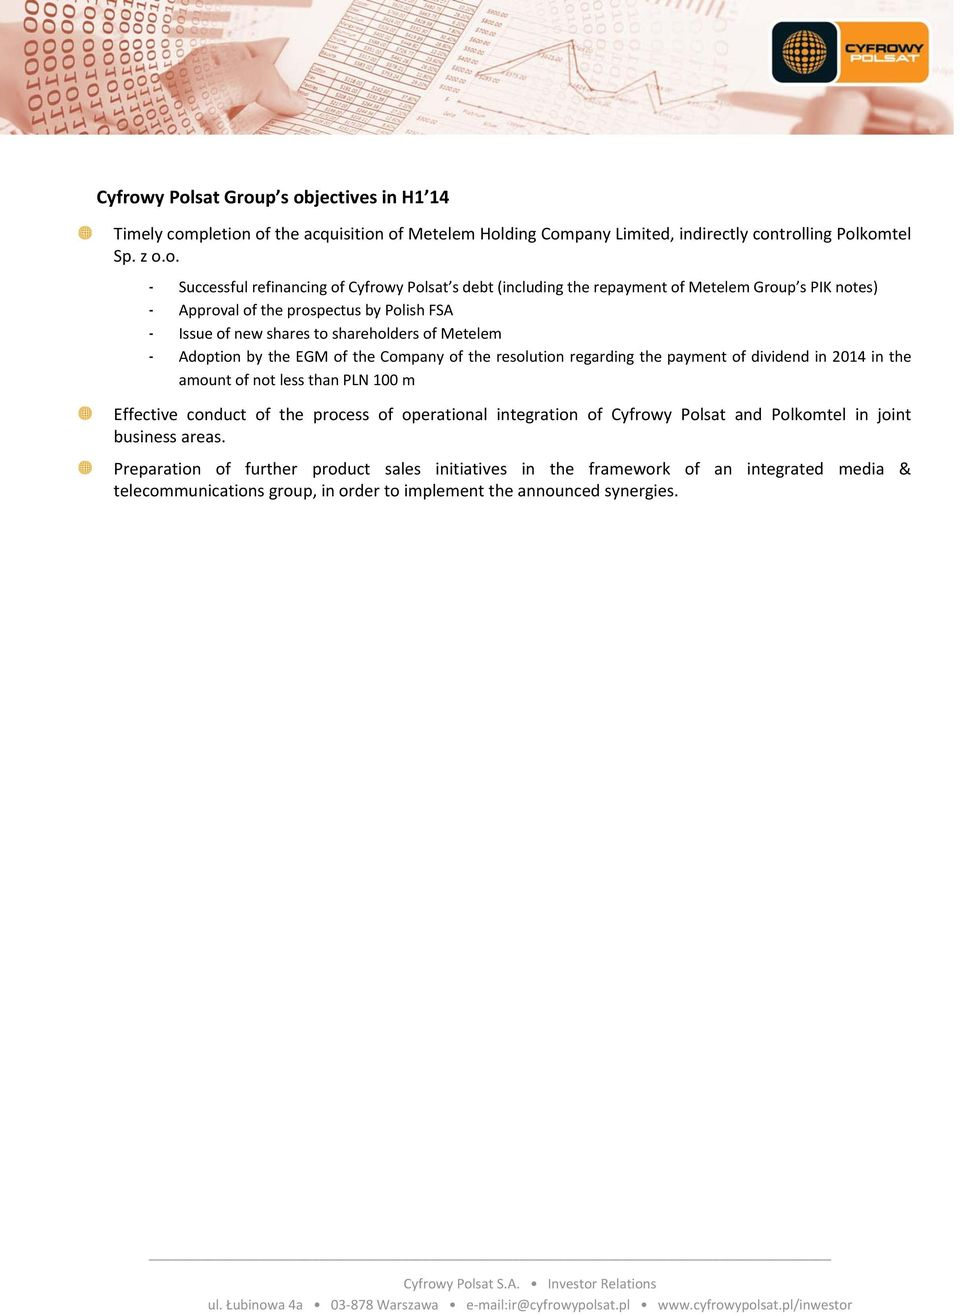 debt (including the repayment of Metelem Group s PIK notes) - Approval of the prospectus by Polish FSA - Issue of new shares to shareholders of Metelem - Adoption by the EGM of the Company of